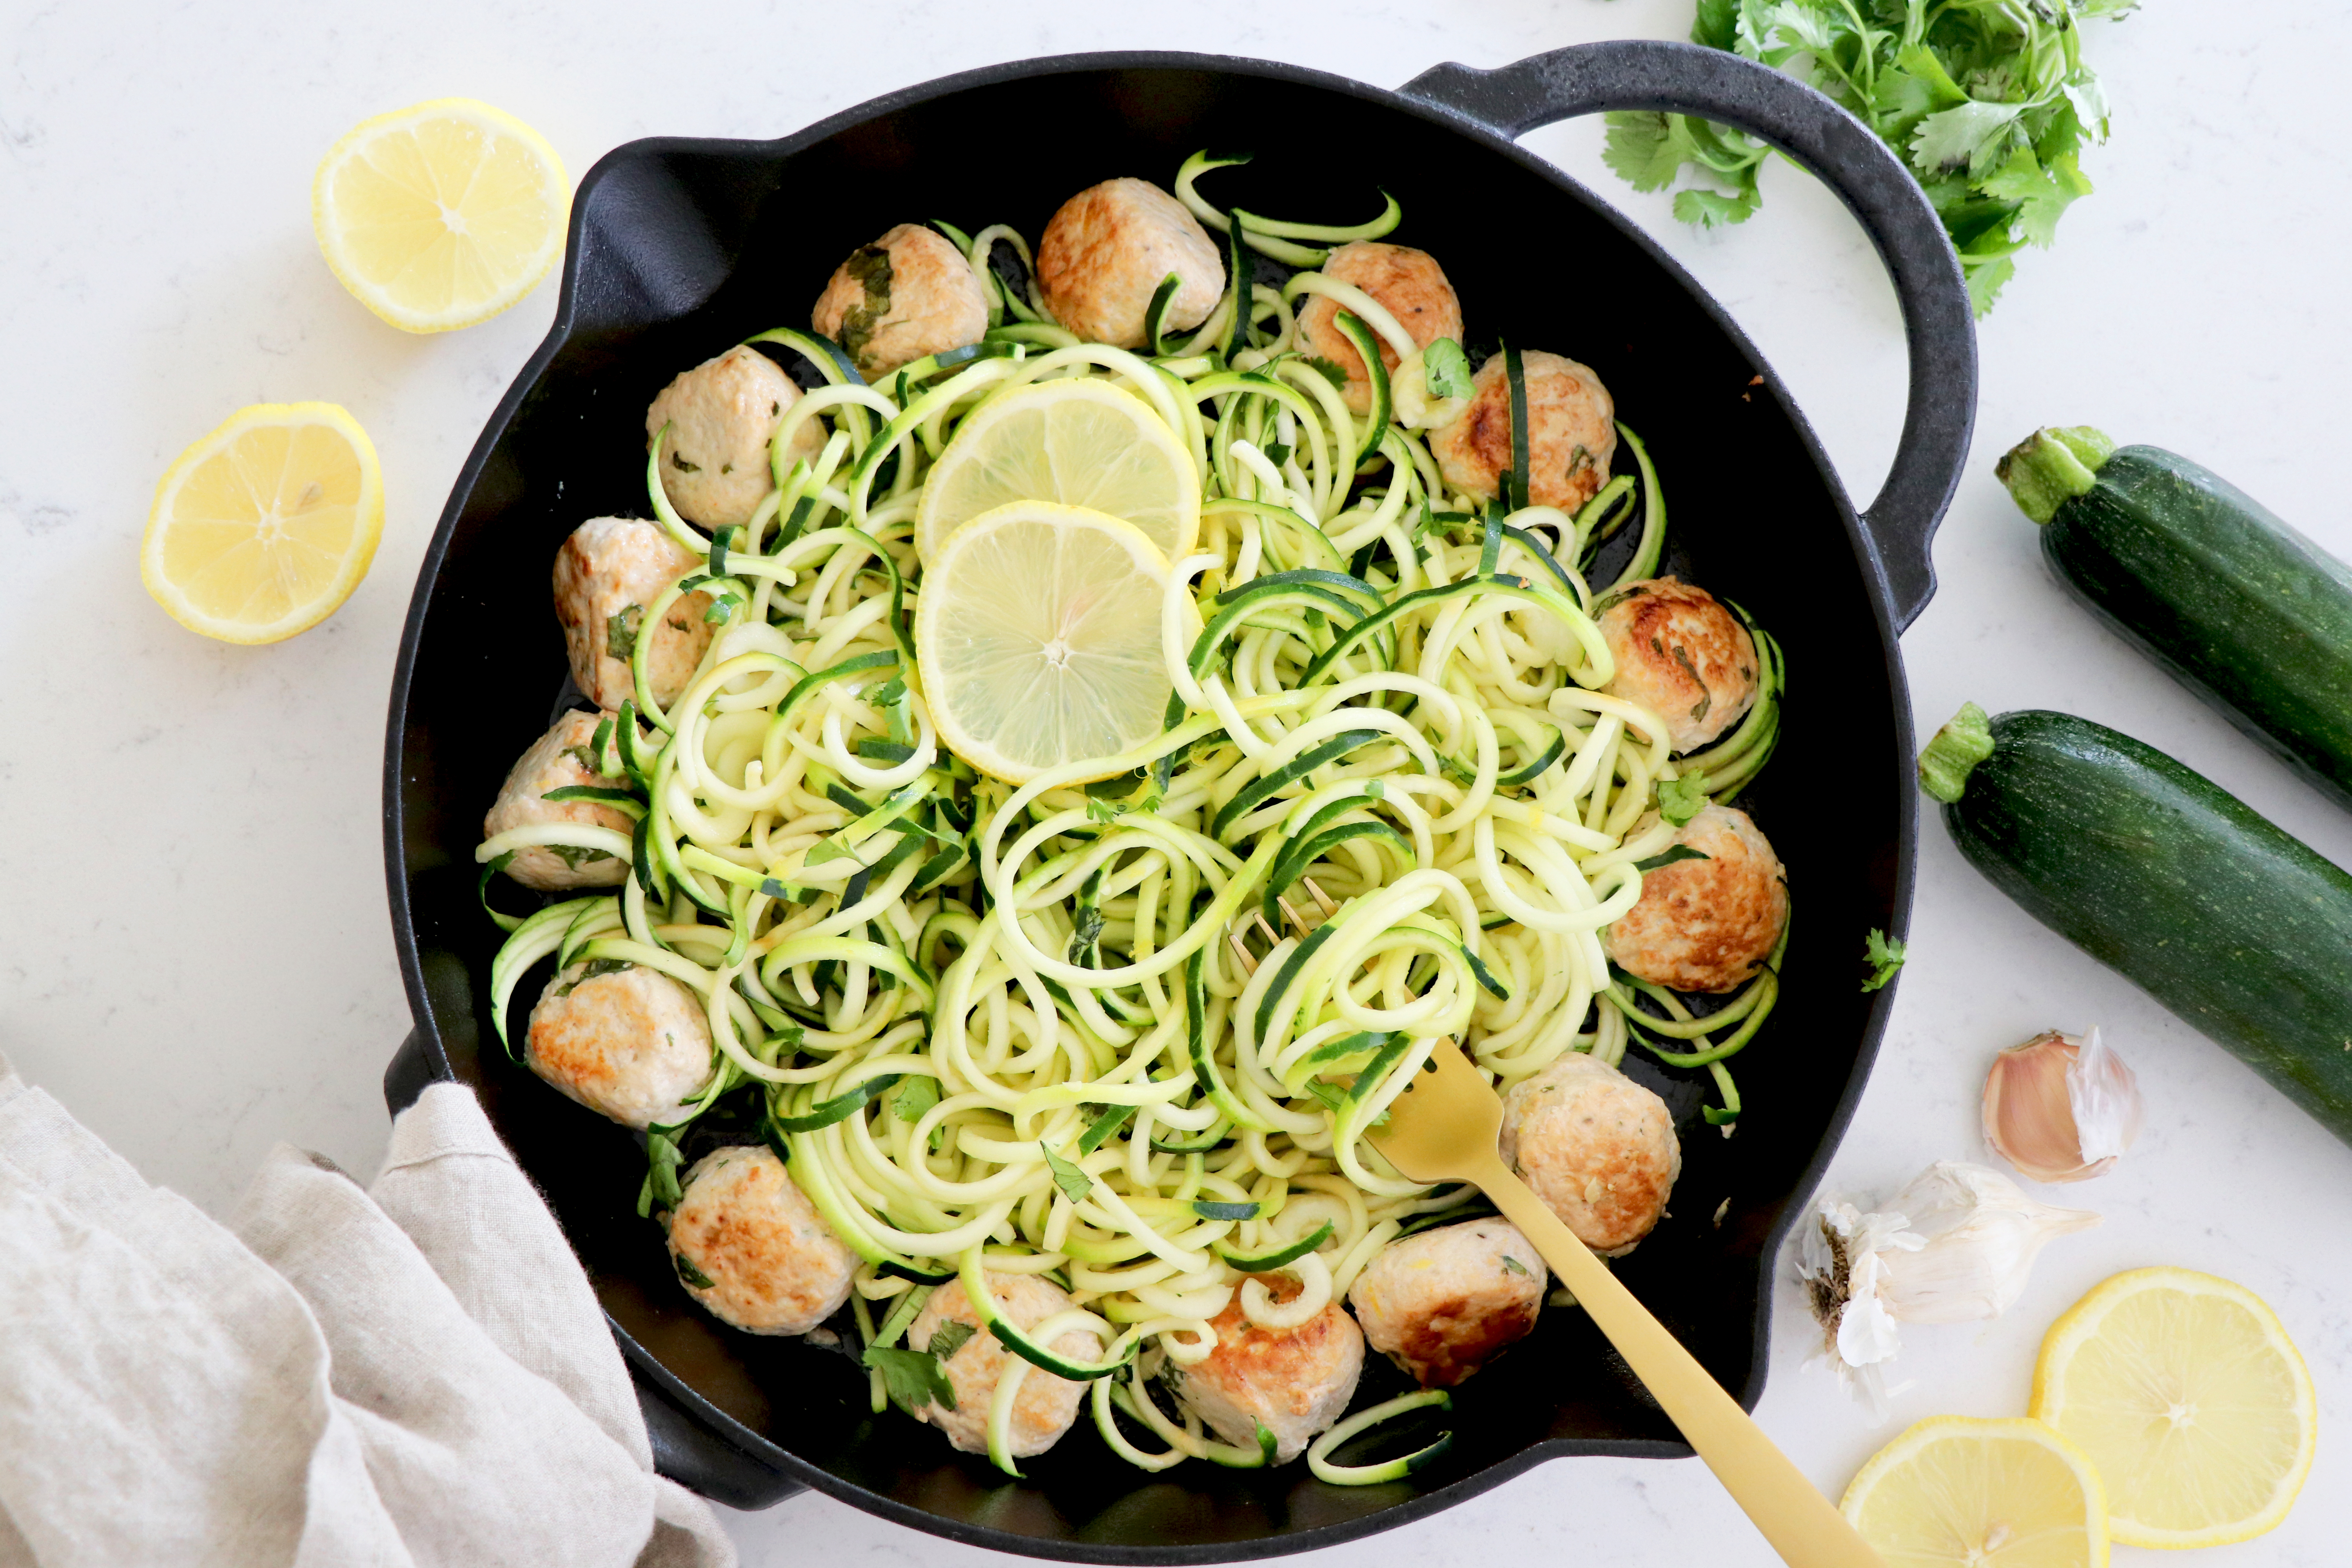 Turkey meatballs with zucchini noodles and lemon on cast iron pan.